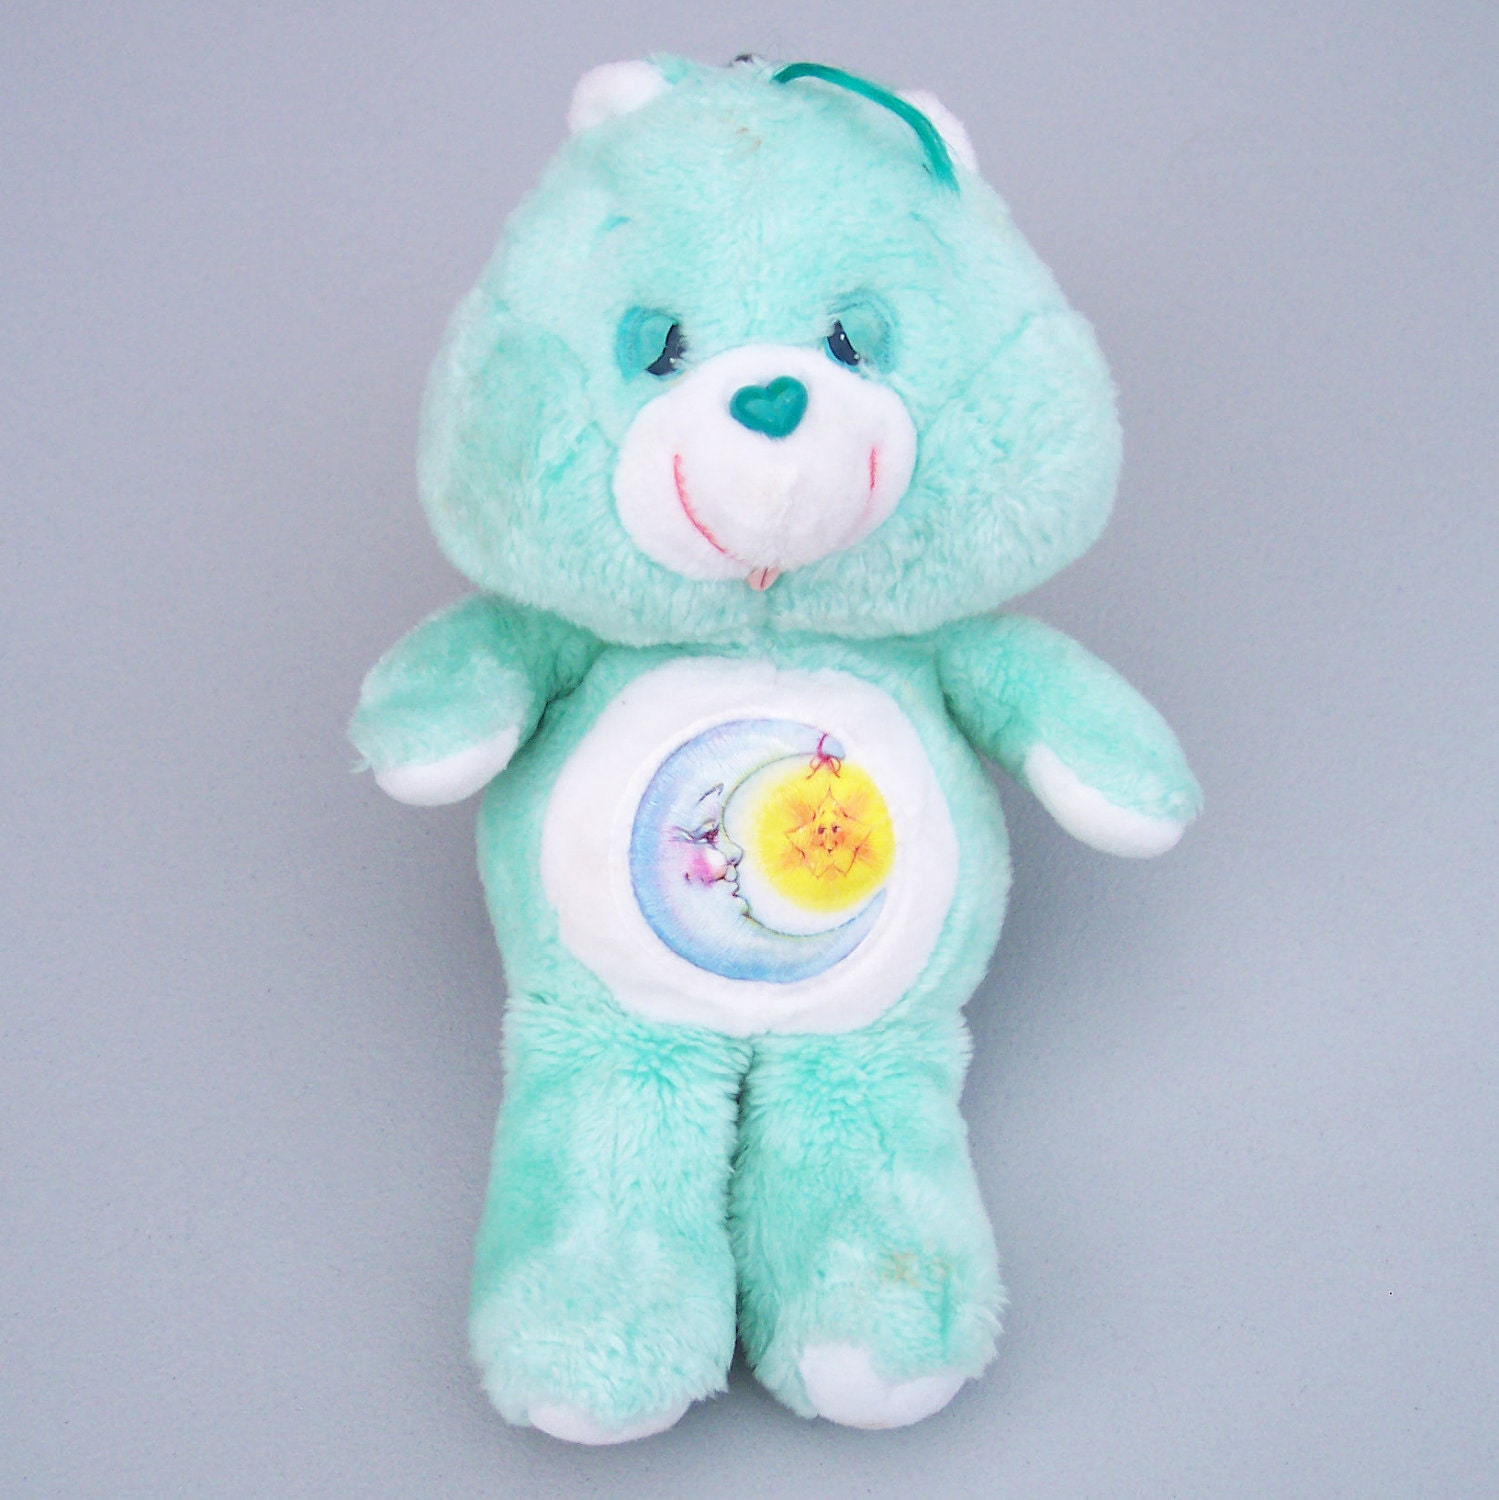 Vintage 1983 Care Bears Bedtime Bear Plush Doll